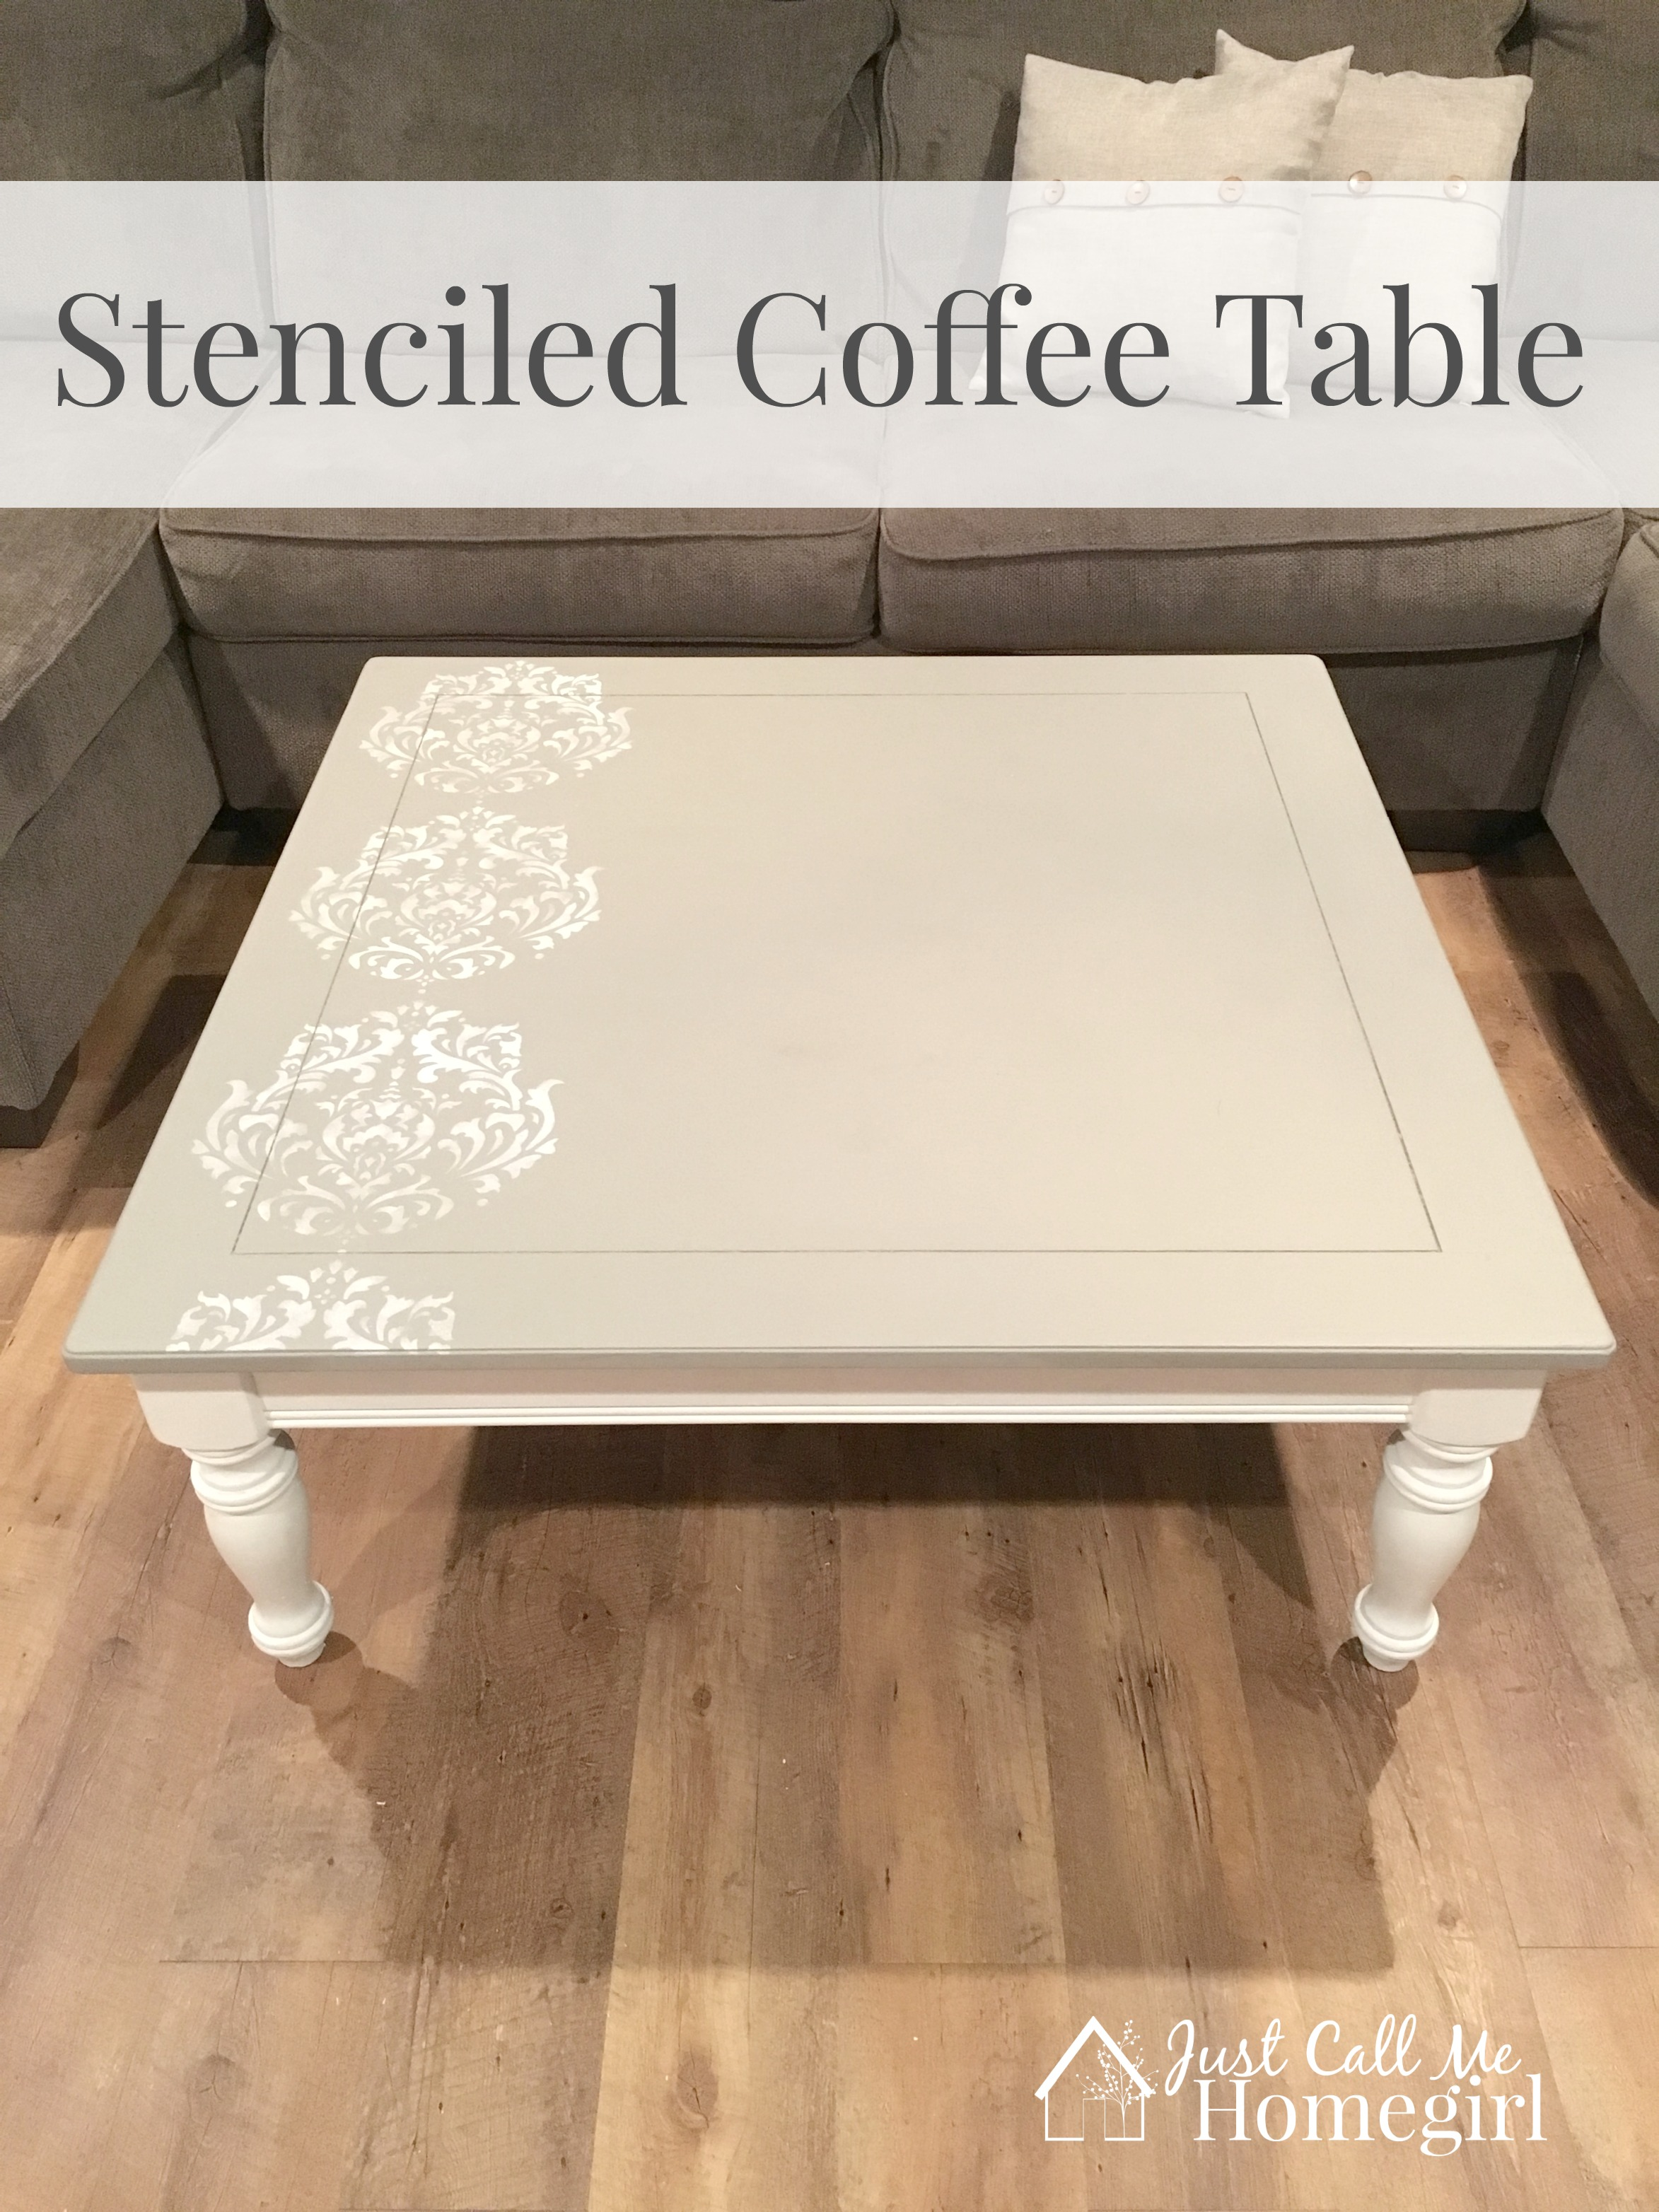 Stenciled Coffee Table Makeover Just Call Me Homegirl